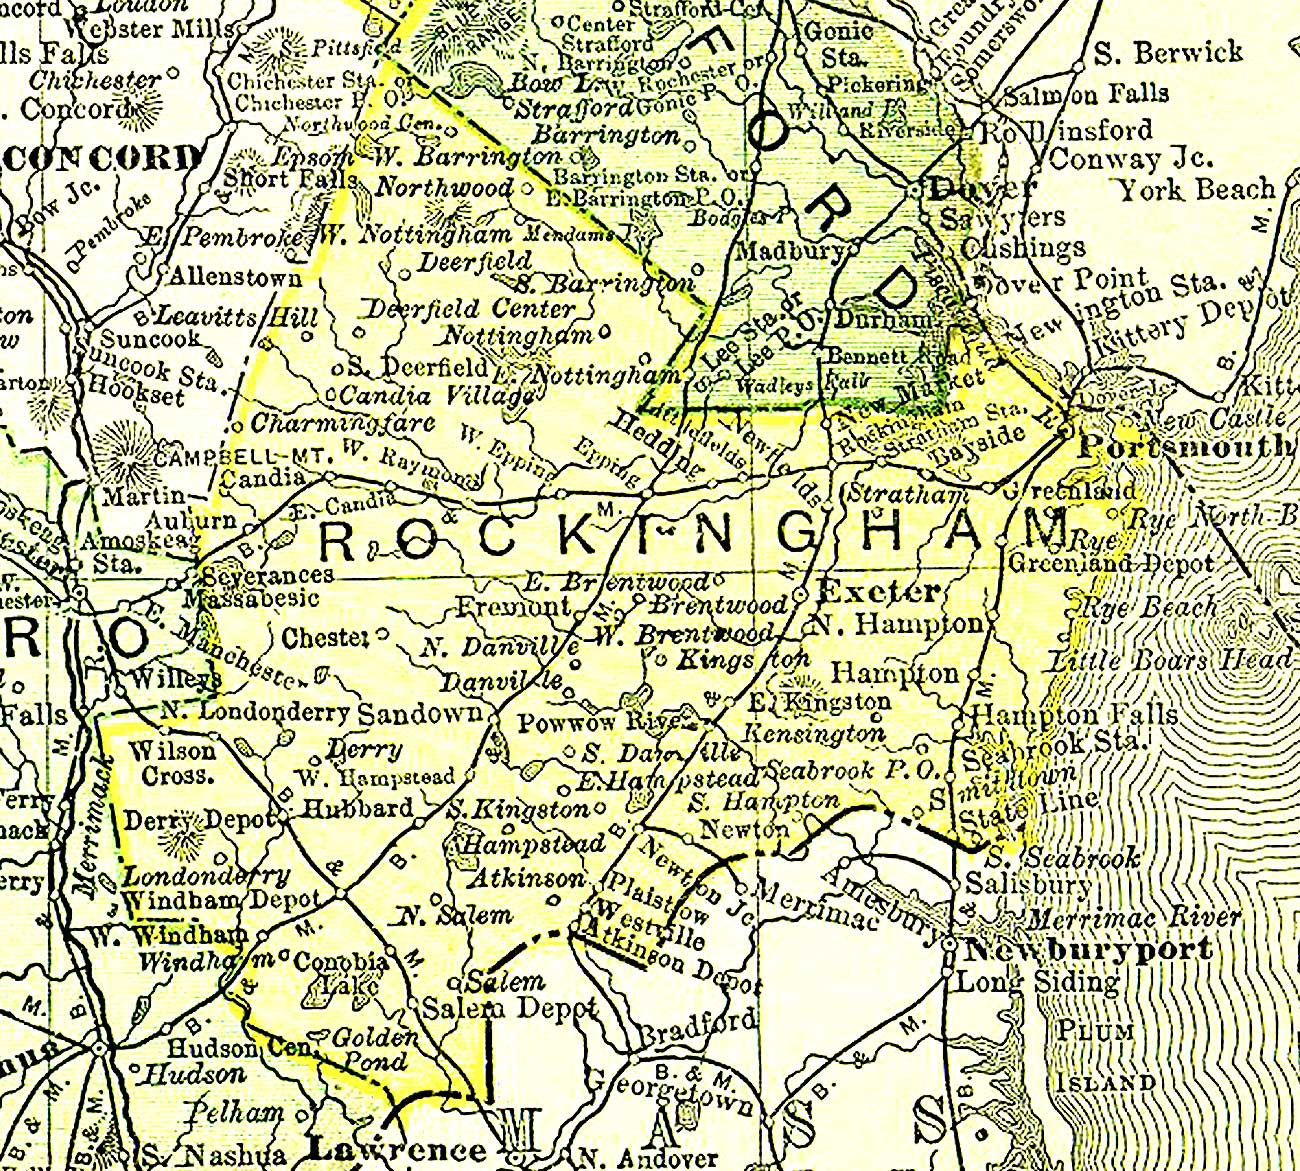 RockinghamNH1895.jpg